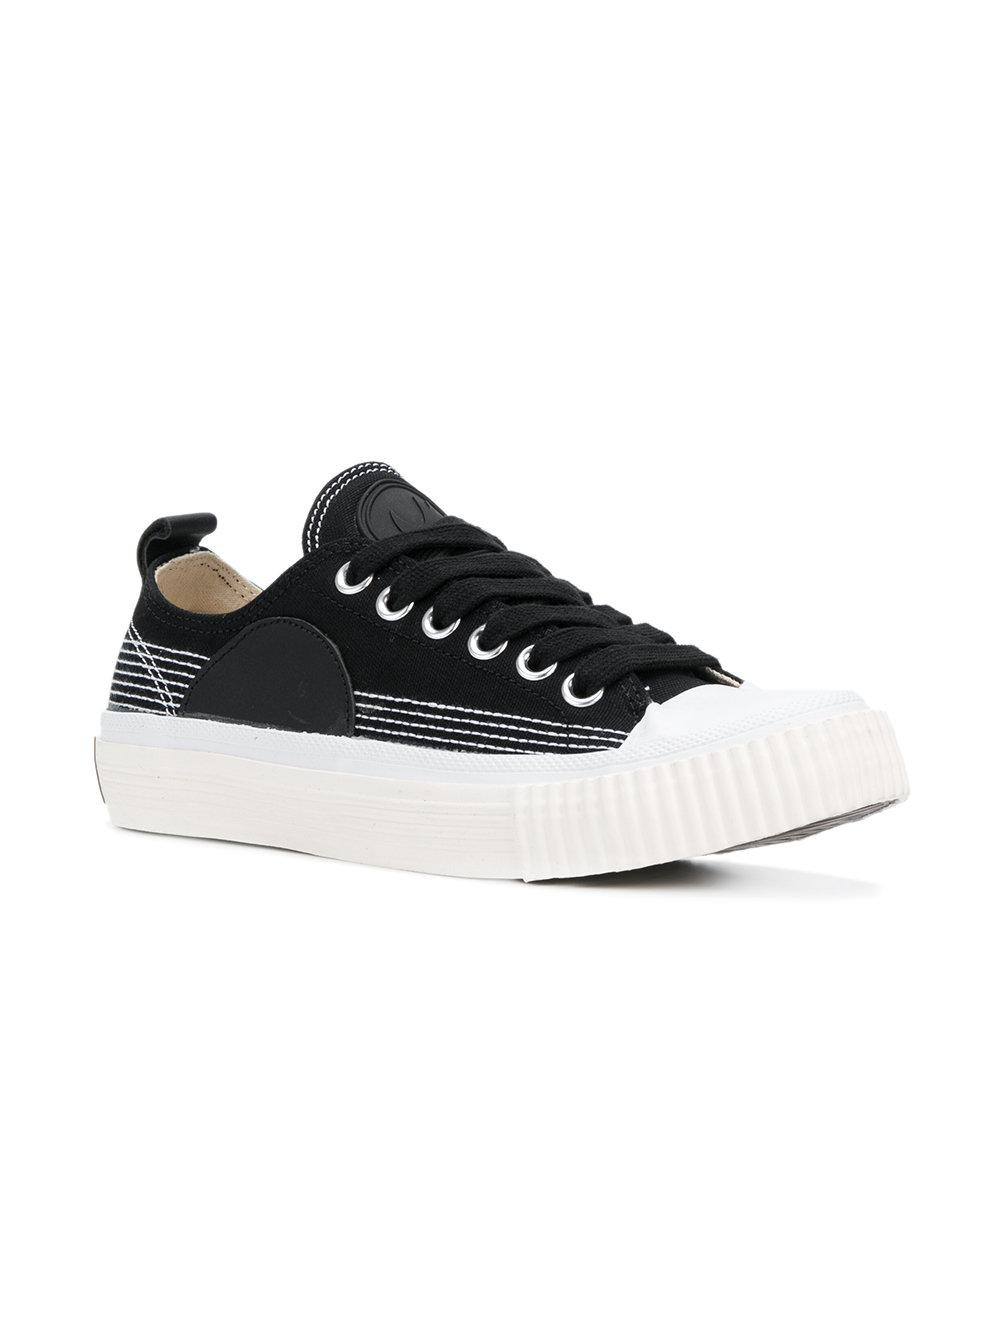 McQ Canvas Toe Capped Sneakers in Black